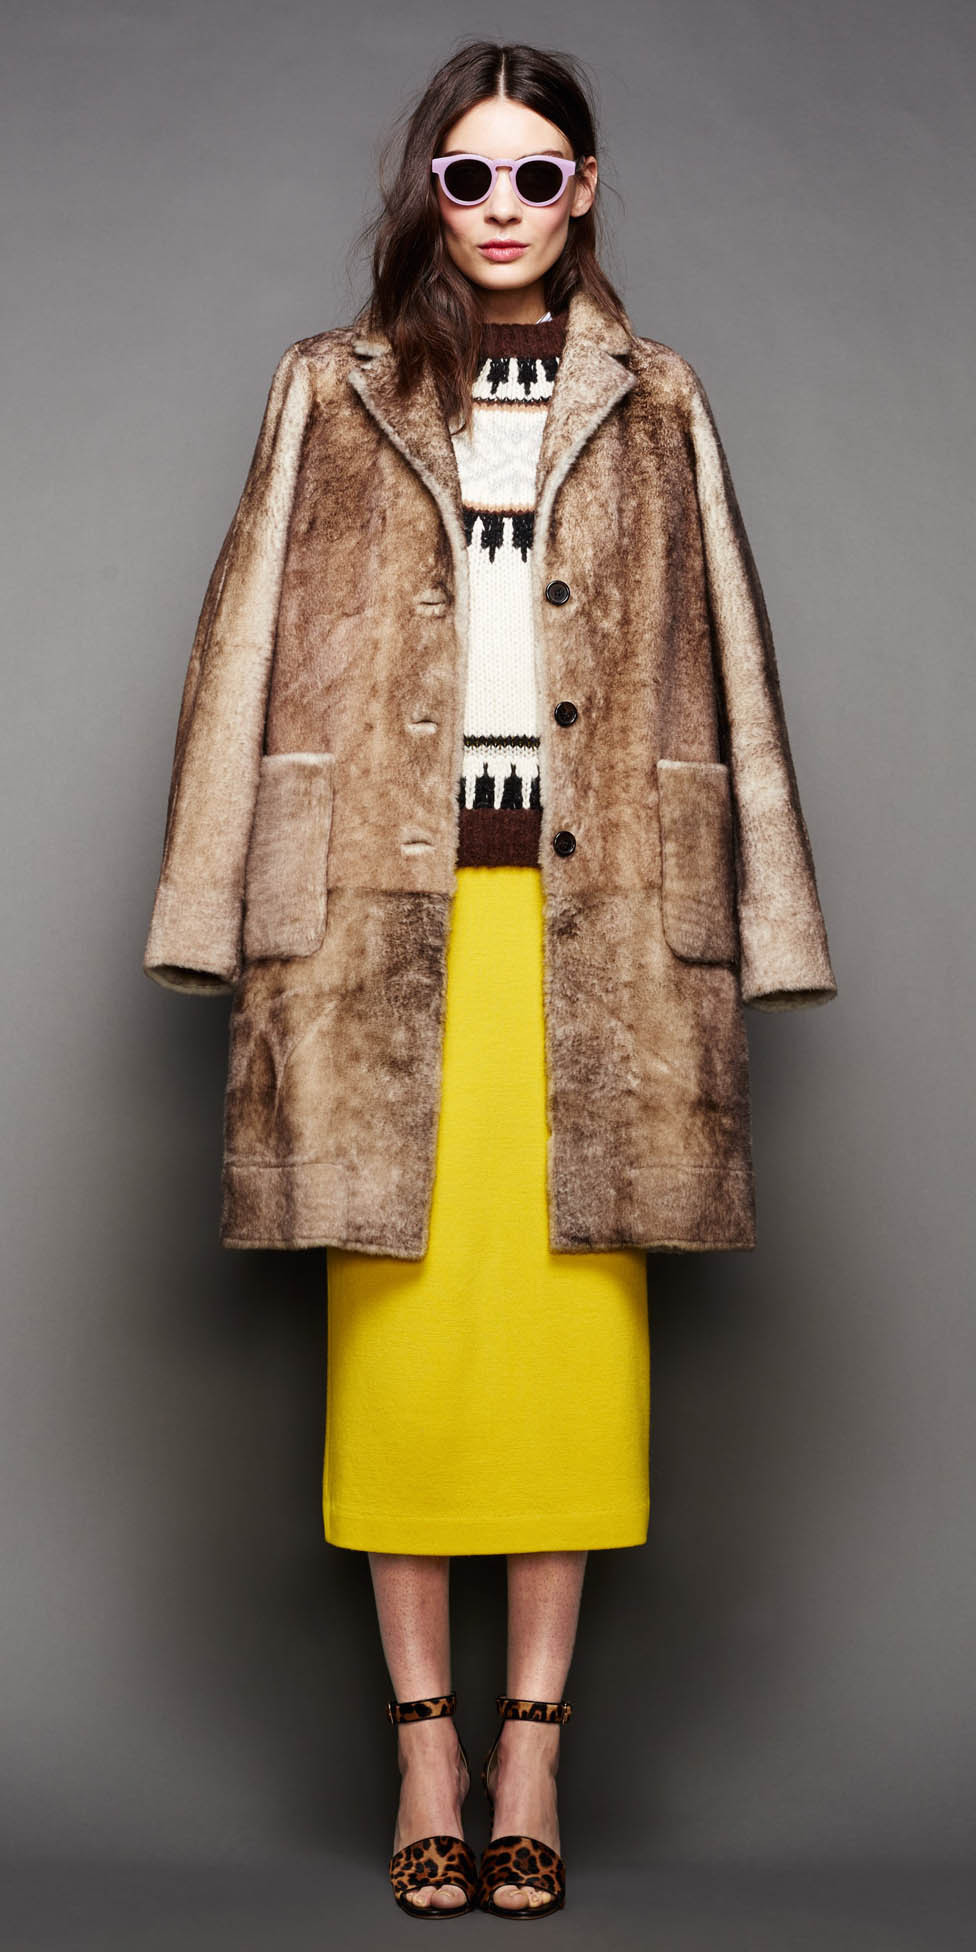 yellow-midi-skirt-white-sweater-brown-shoe-sandalh-leopard-print-sun-jcrew-camel-jacket-coat-fall-winter-hairr-lunch.jpg